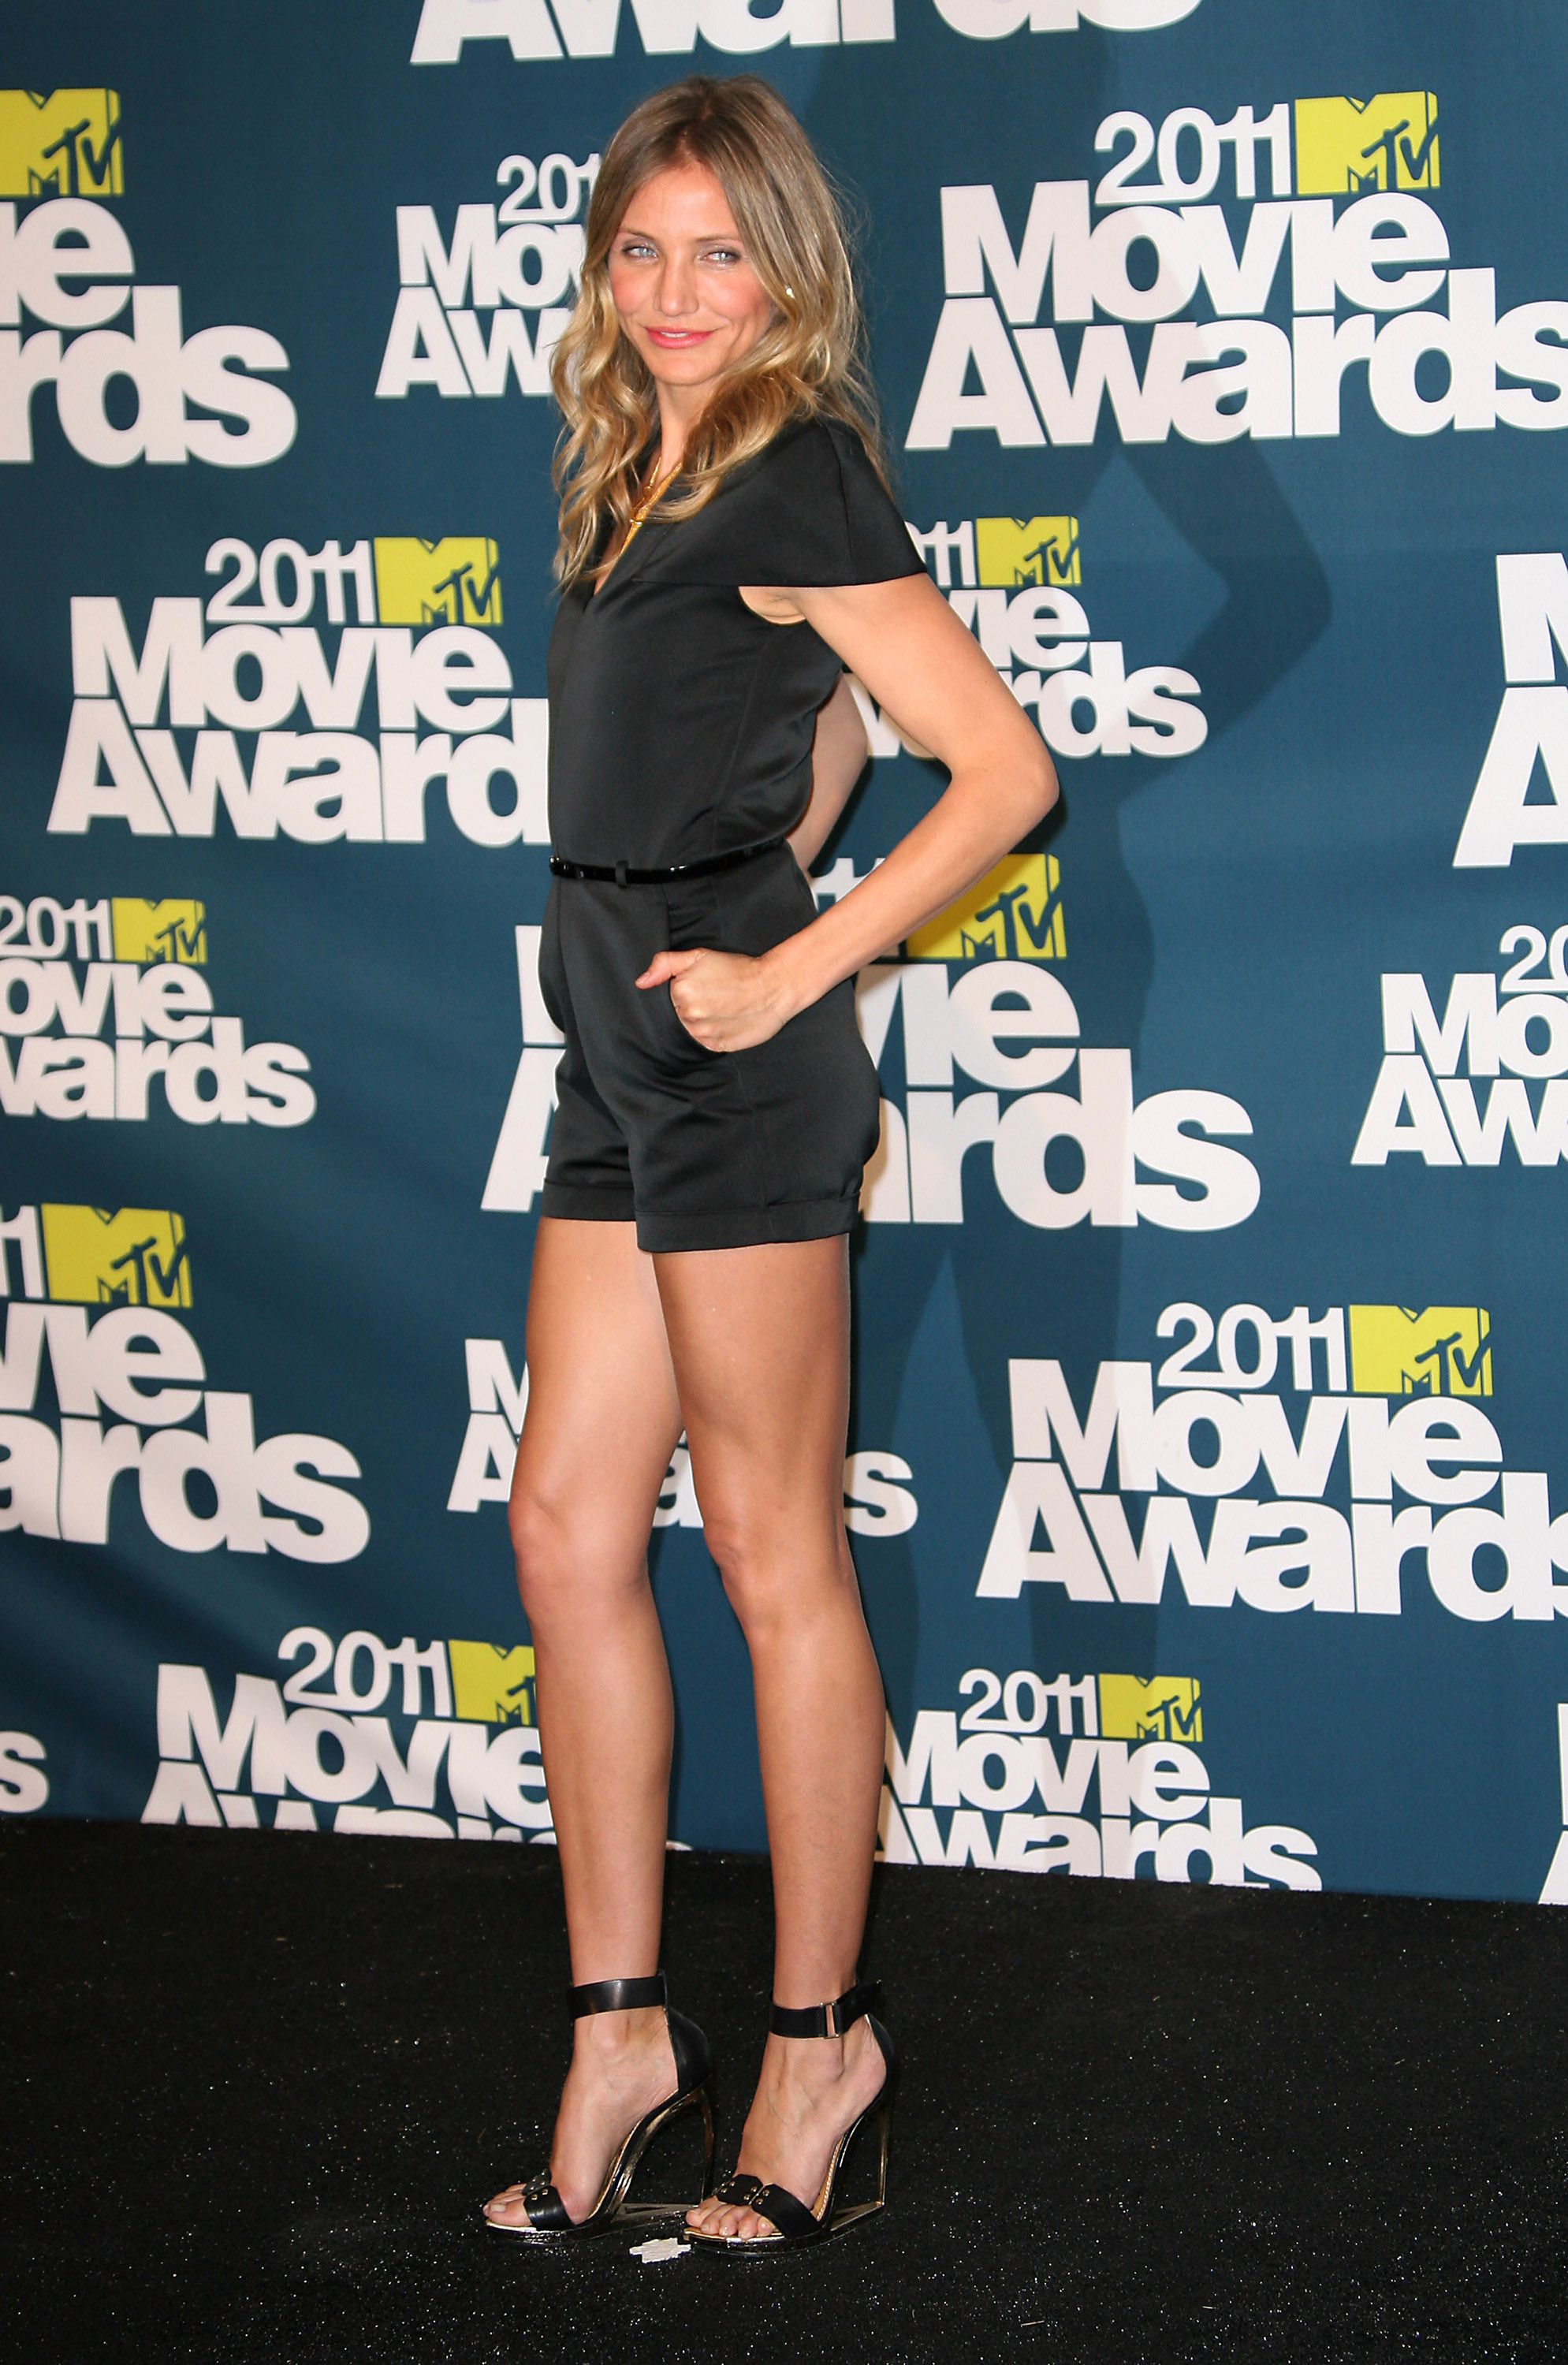 Cameron Diaz at MTV Movie Awards: Phillip Lim rompe